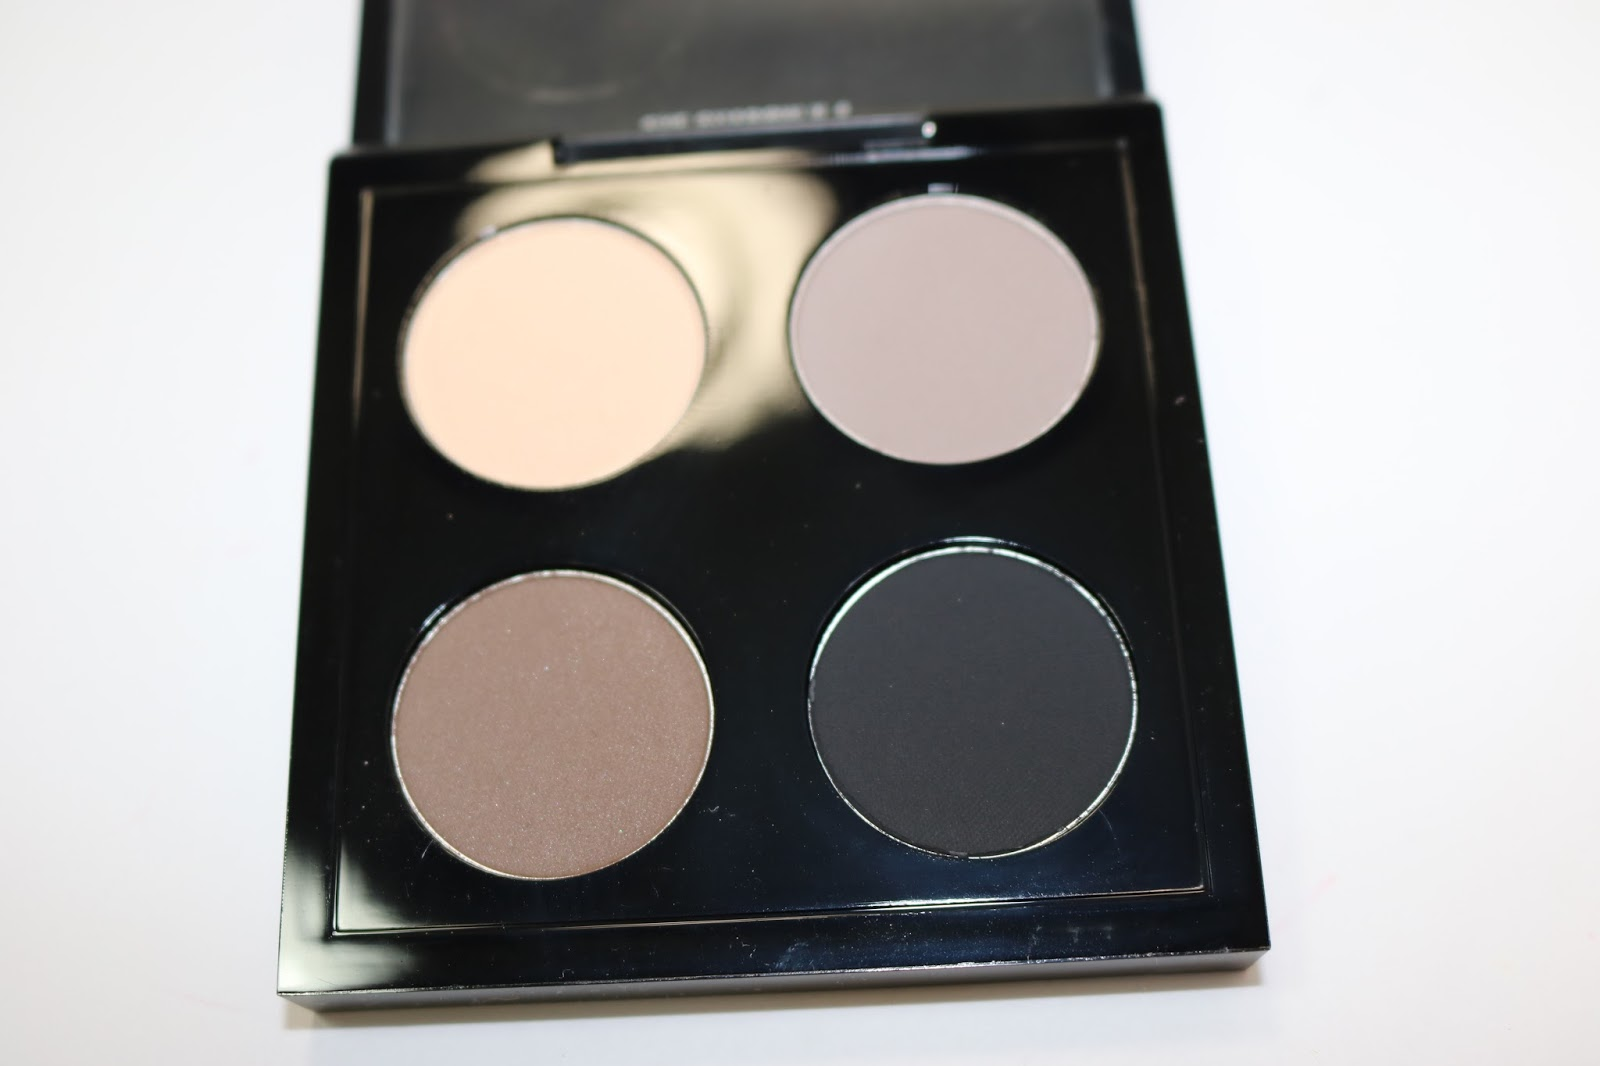 MAC Eye Shadow x 4 in Point 'N' Shoot